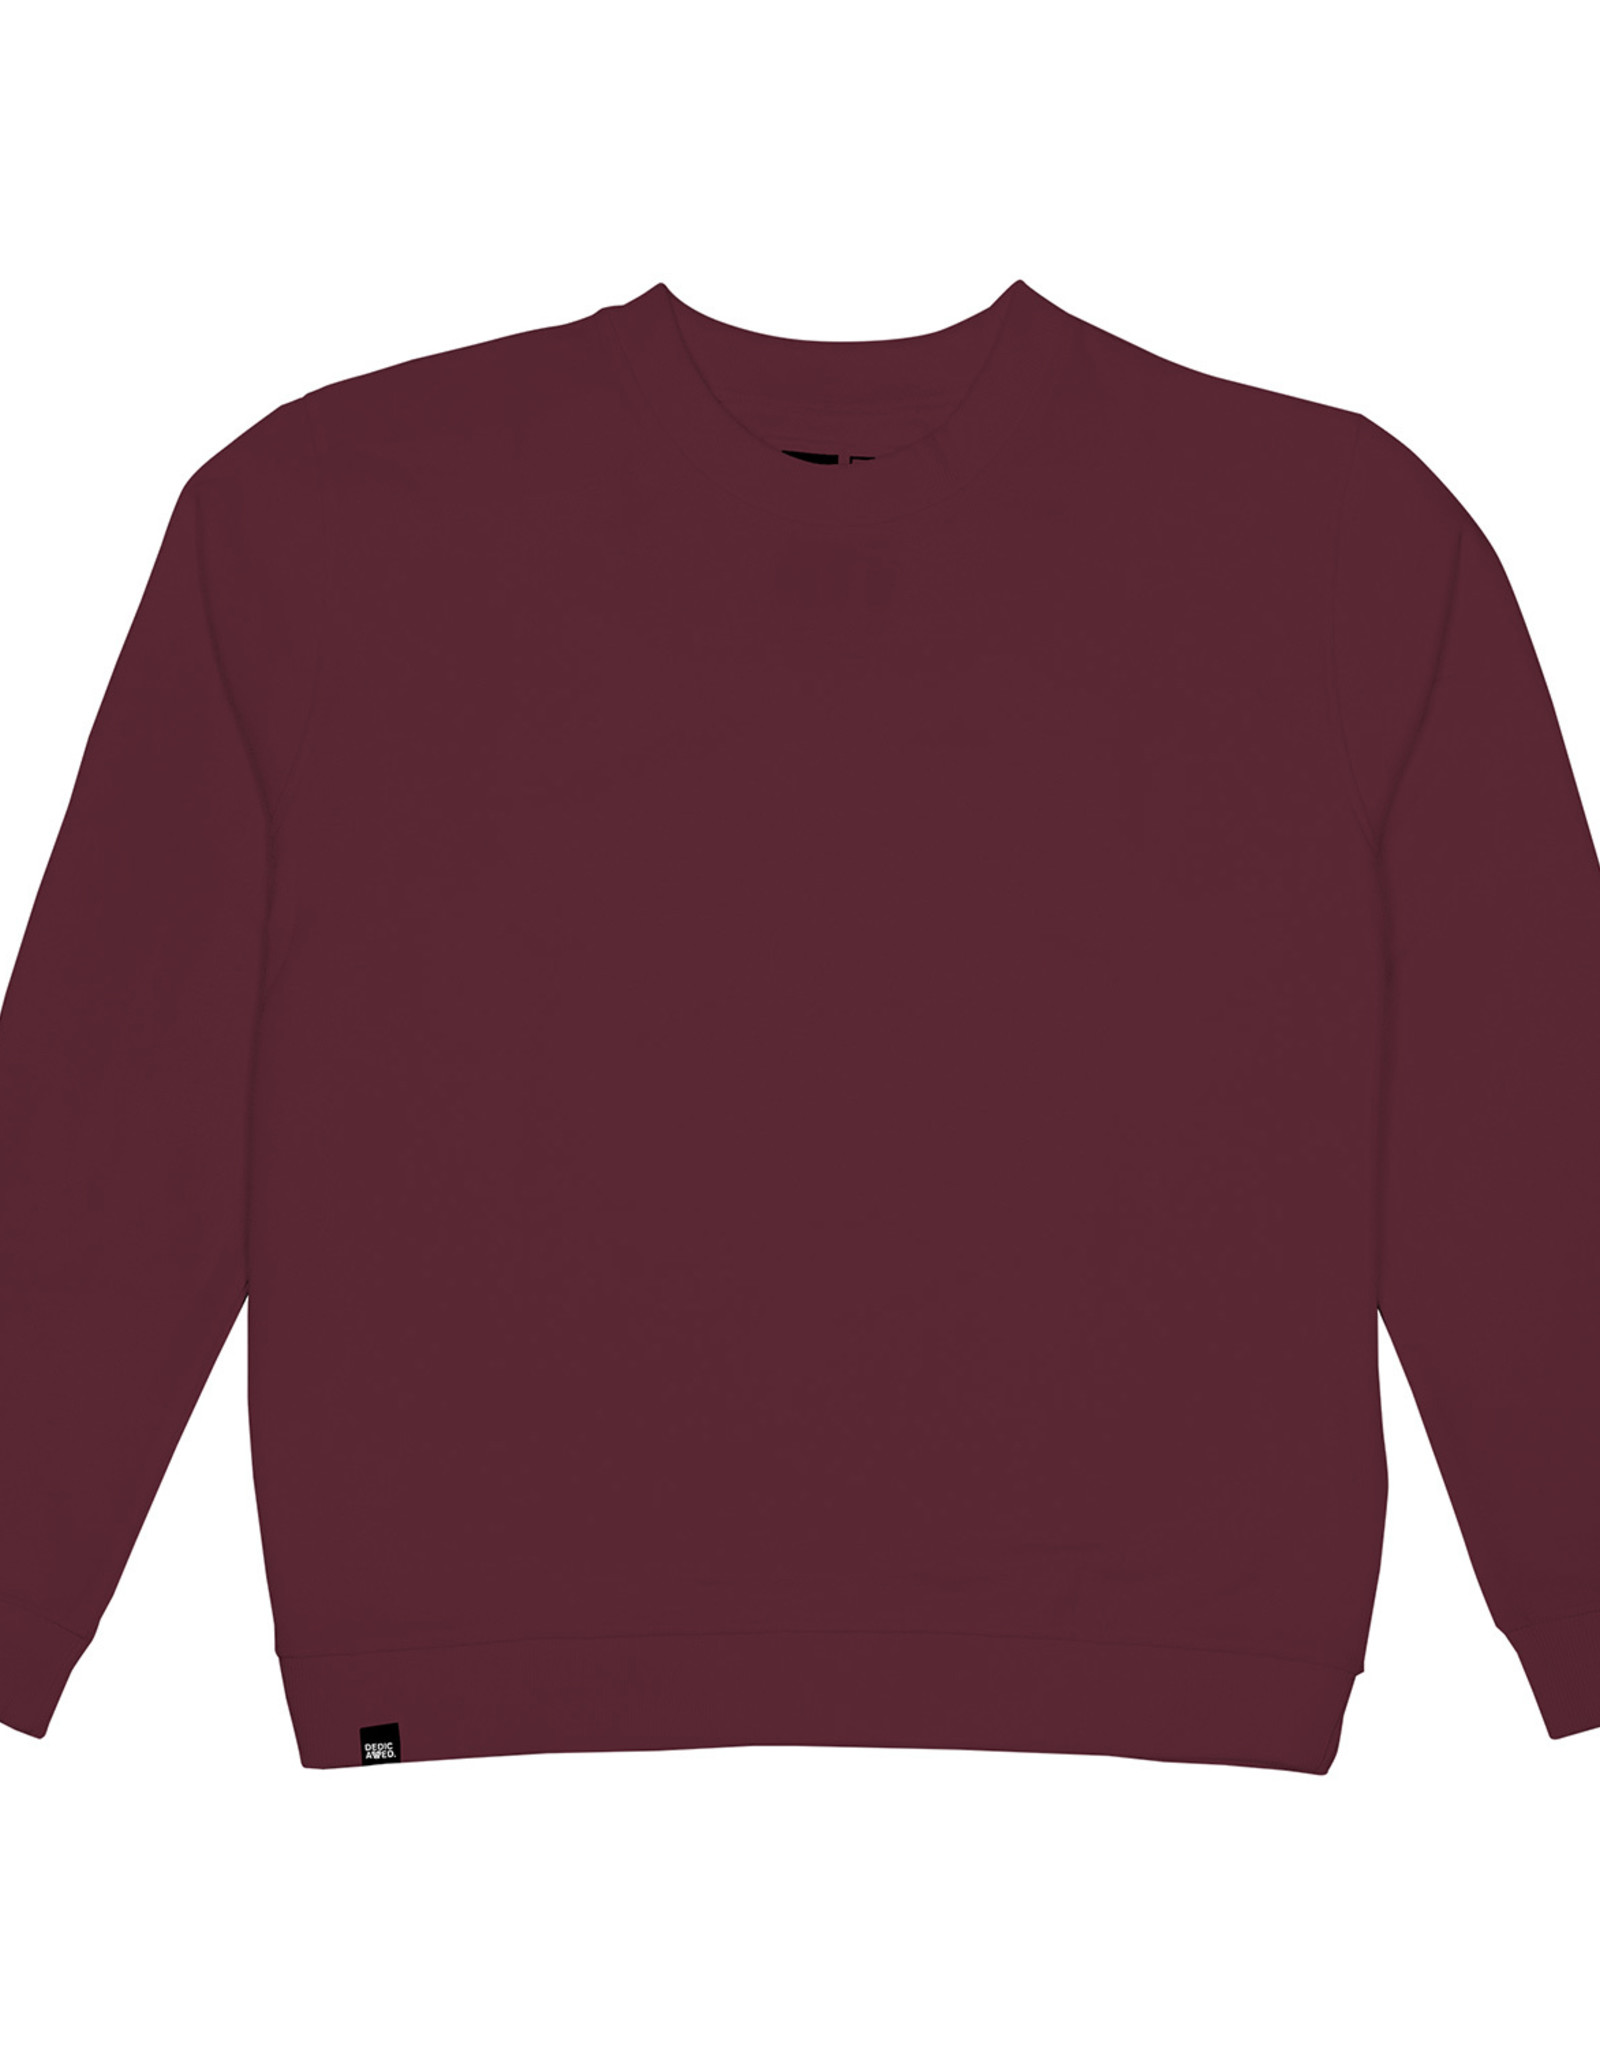 Dedicated SWEATSHIRT ESSENTIAL YSTAD BORDEAUX